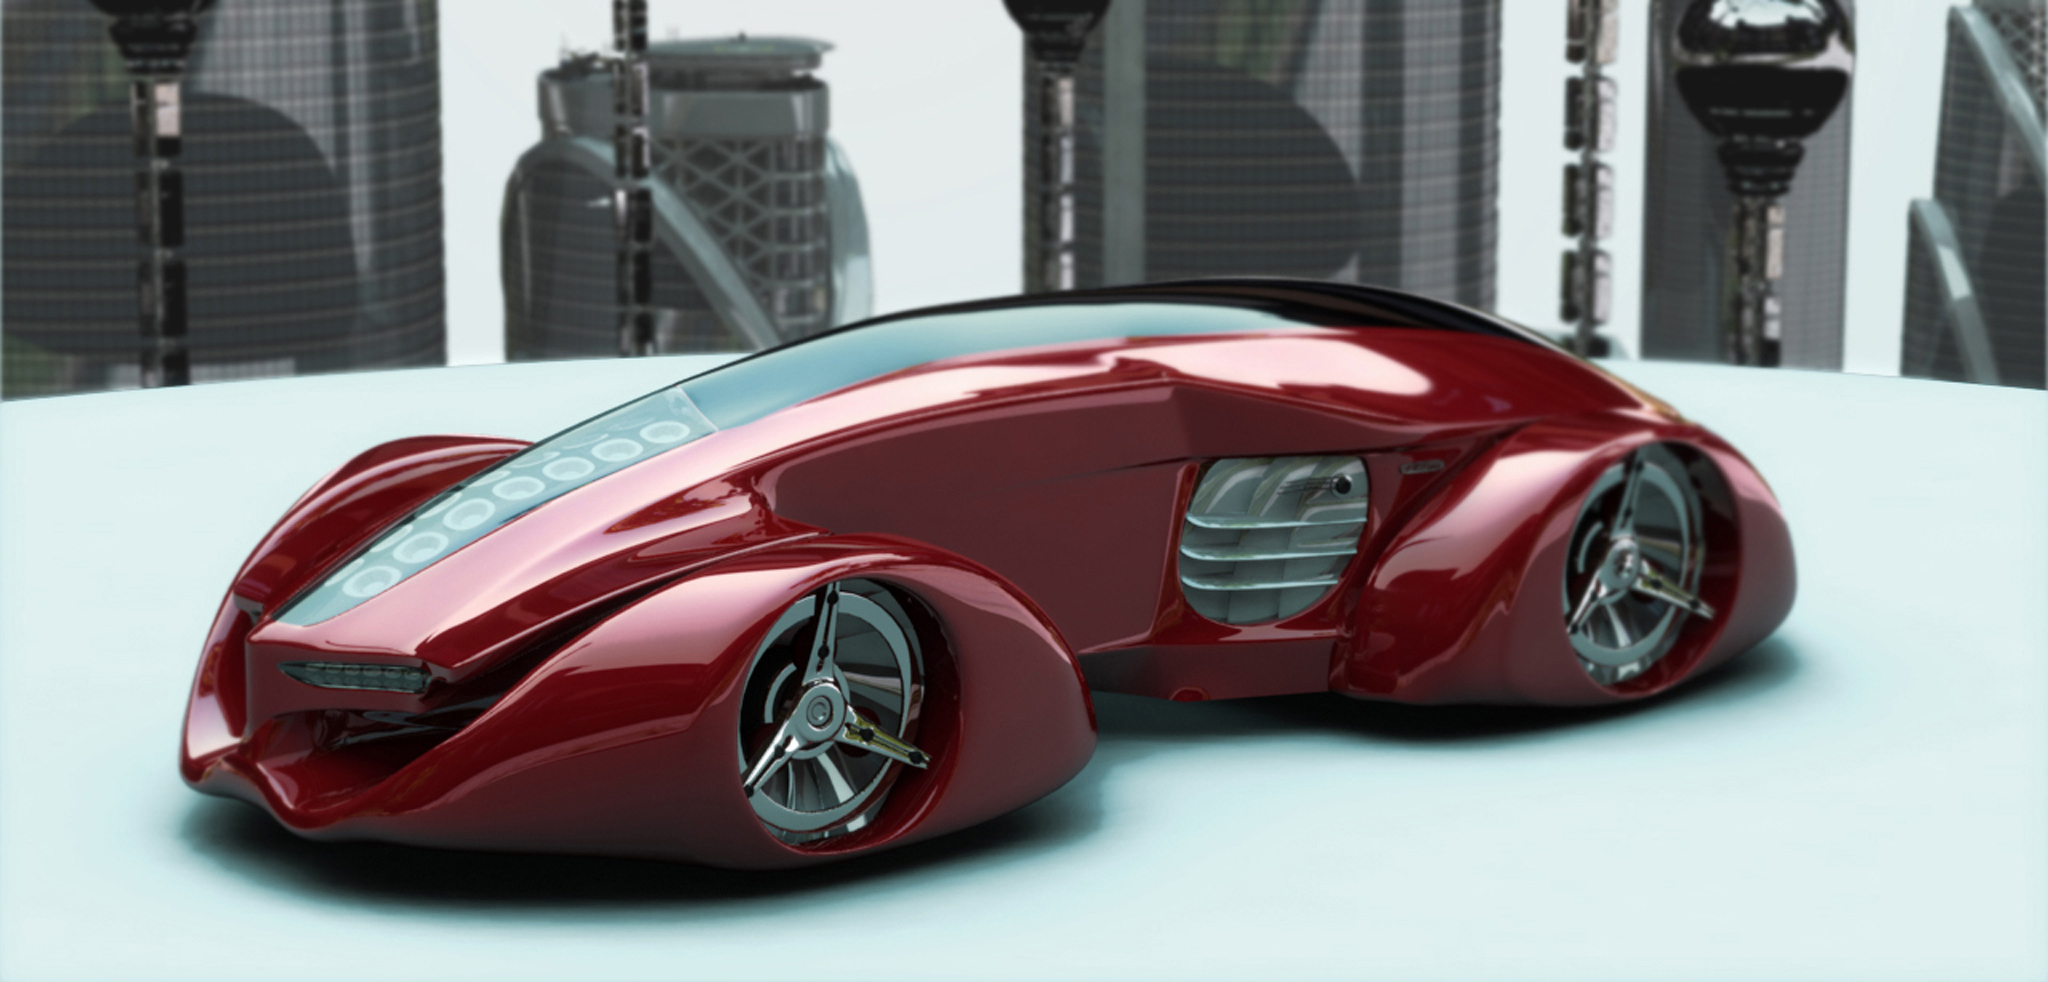 H Car By Thomas Pastor, France